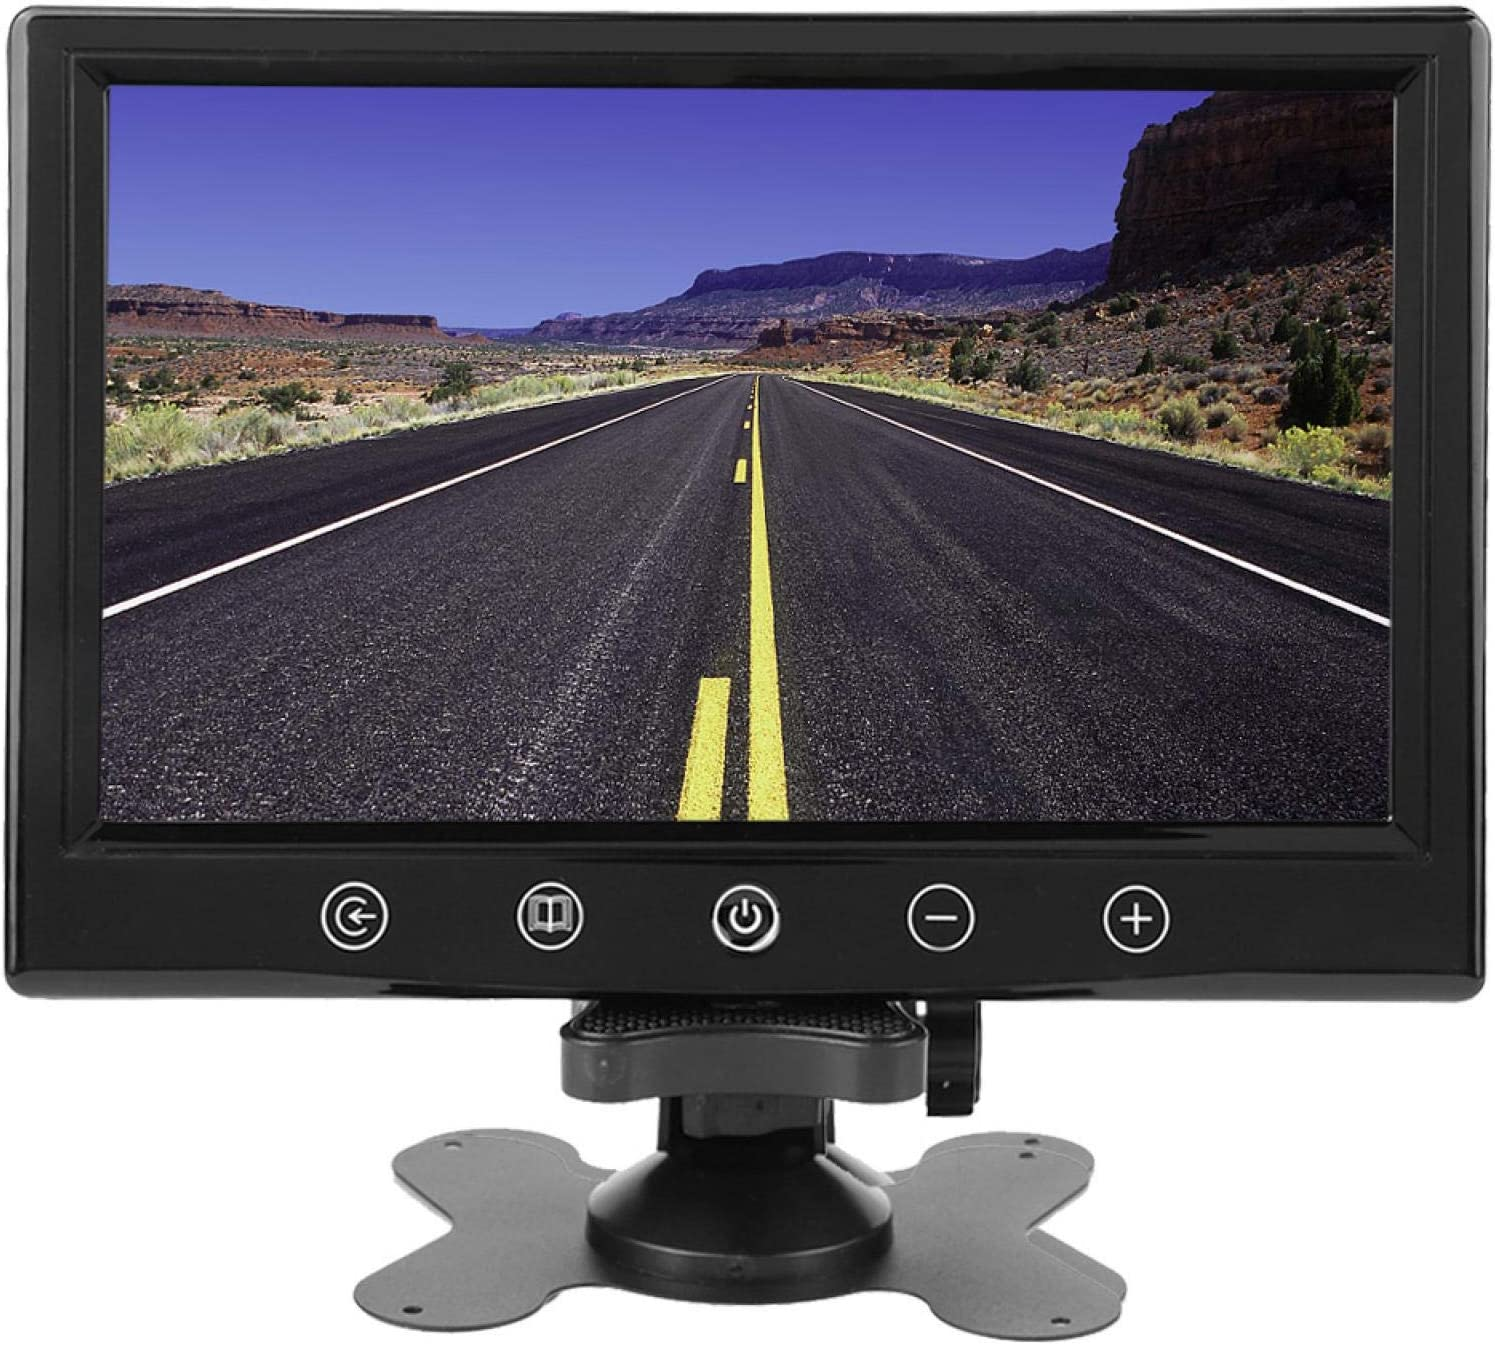 9inch Max 86% OFF Car Rearview Monitor Desktop Ranking TOP5 Stable Performance Monit